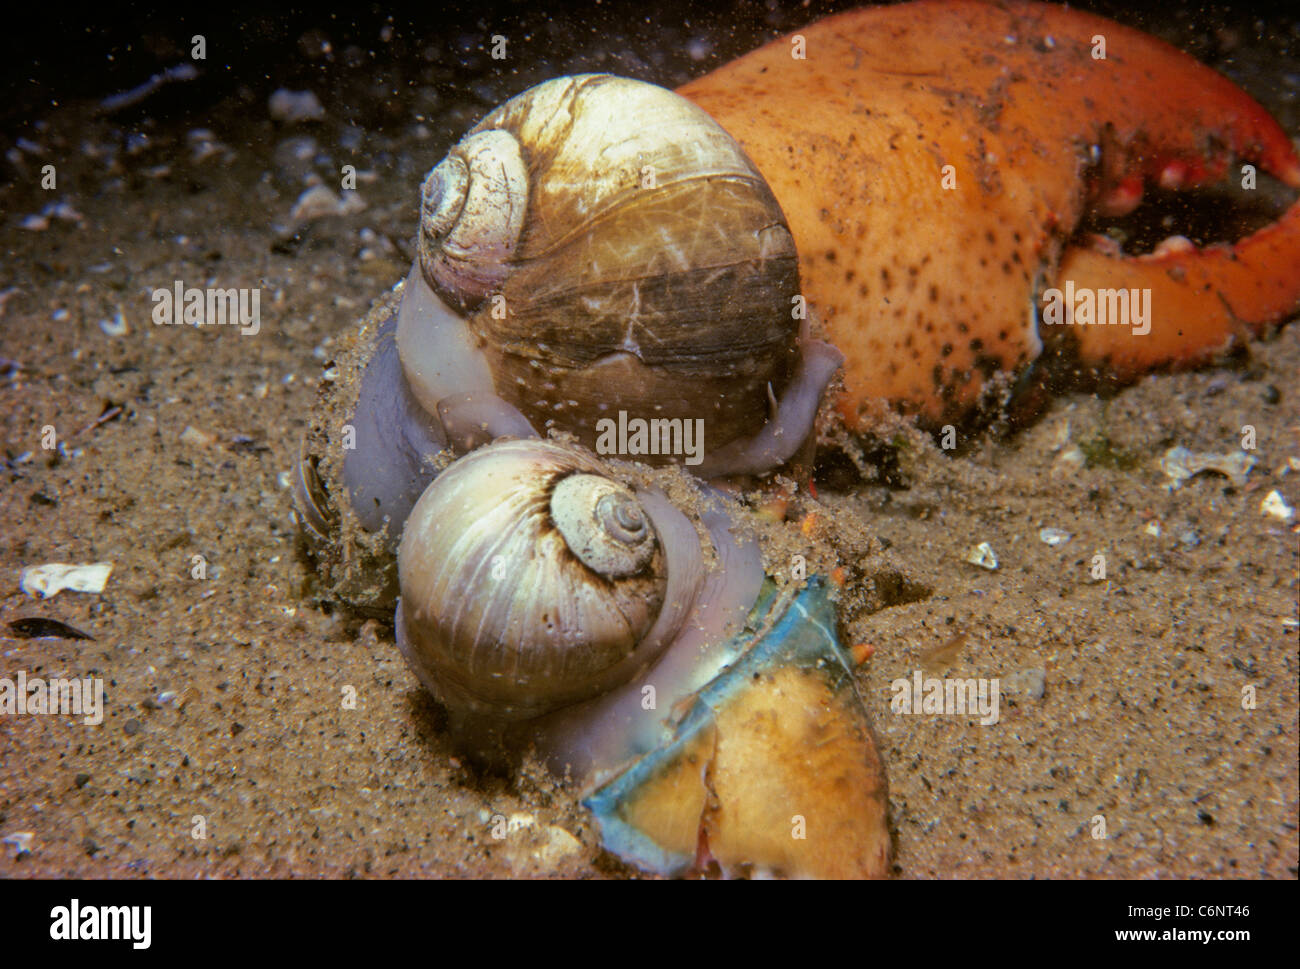 Northern moon Snails (Euspira heros) scavenging on a lobster claw. New England, Atlantic Ocean - Stock Image